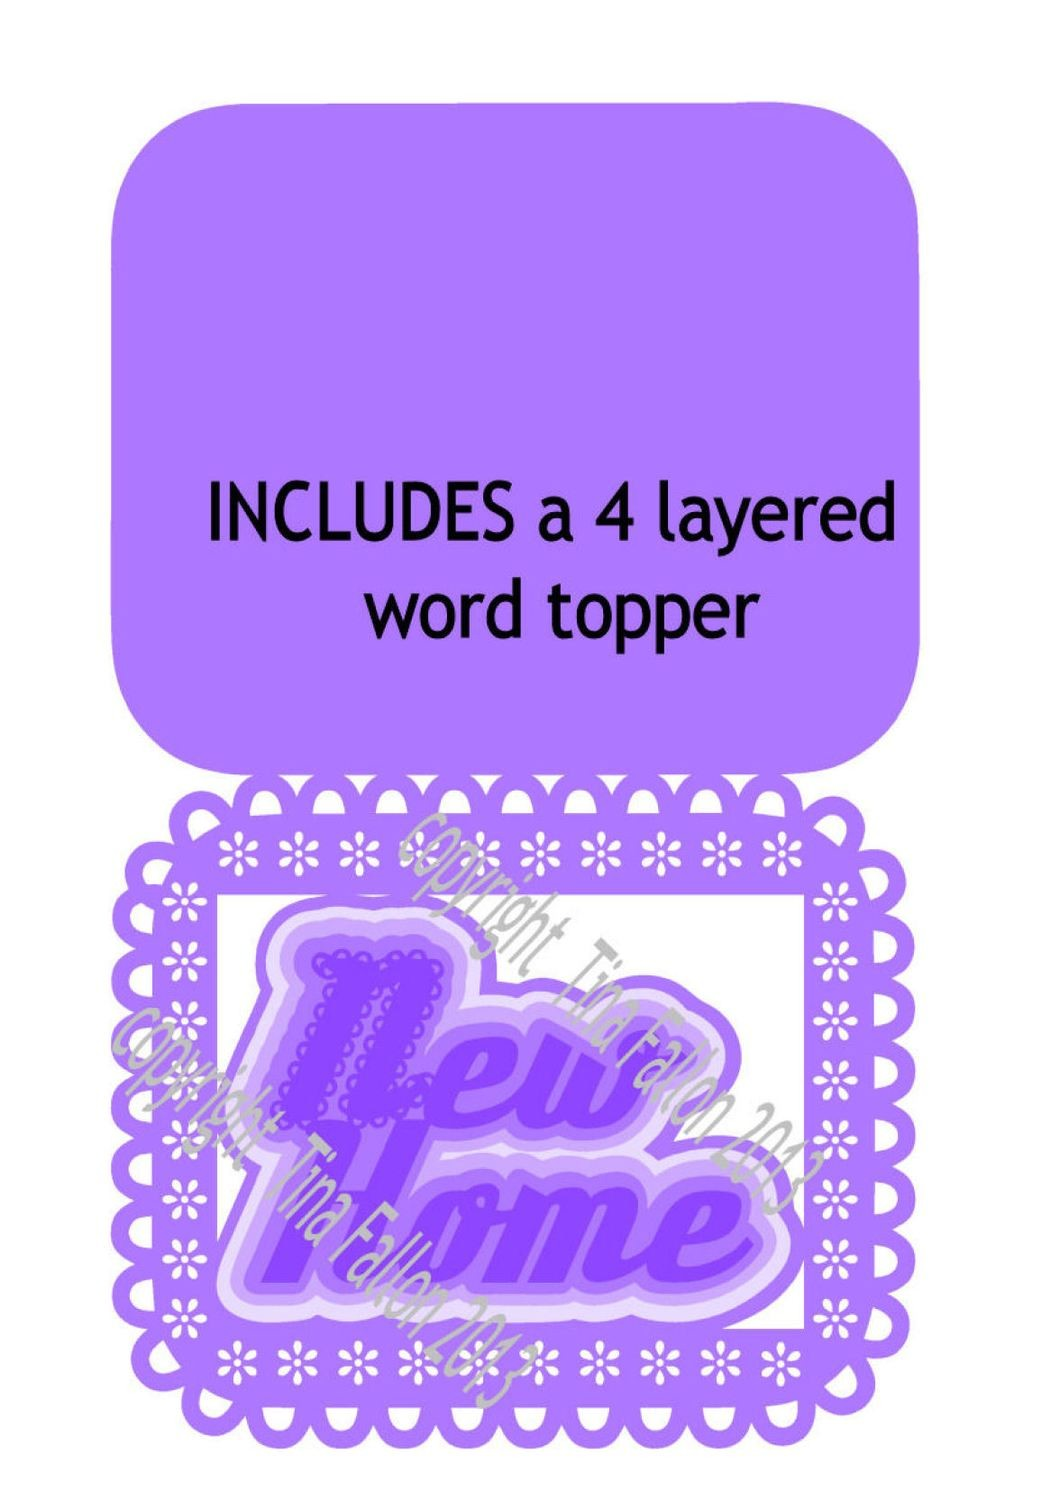 New home No 9 includes a 4 layered word topper